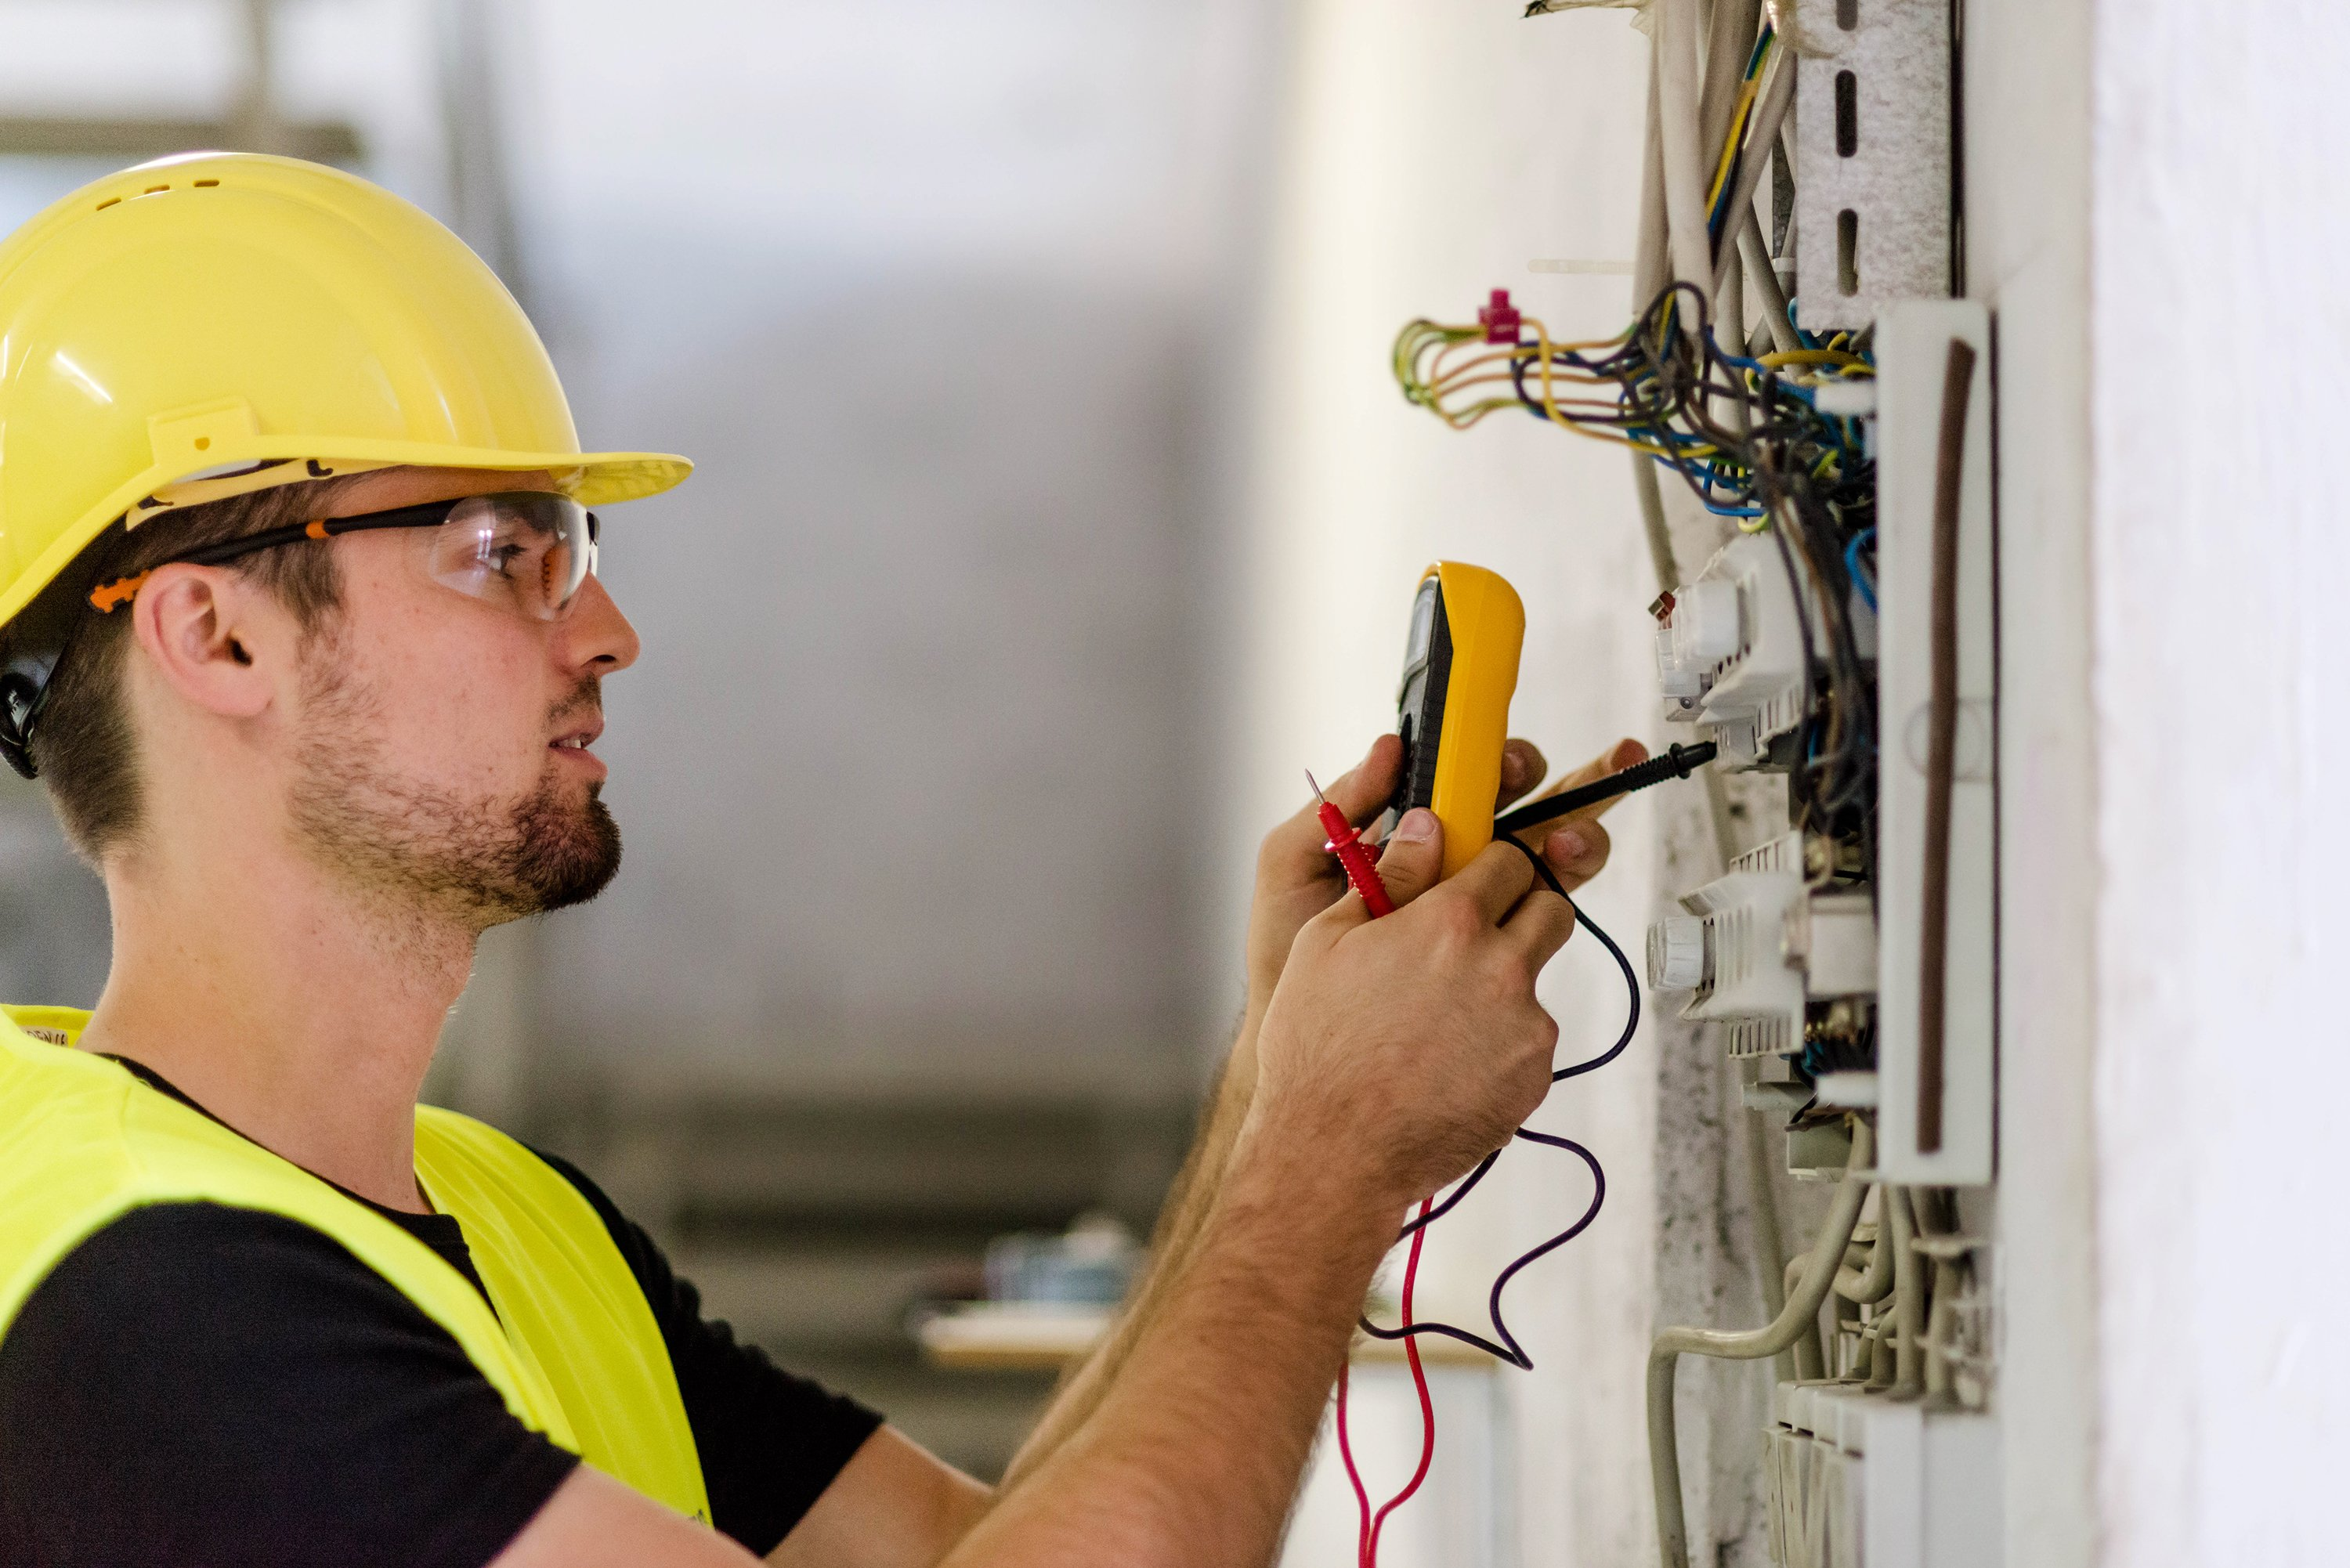 Electrician testing for voltage in a fuse box. He is wearing a protective vest,protective glasses and helmet